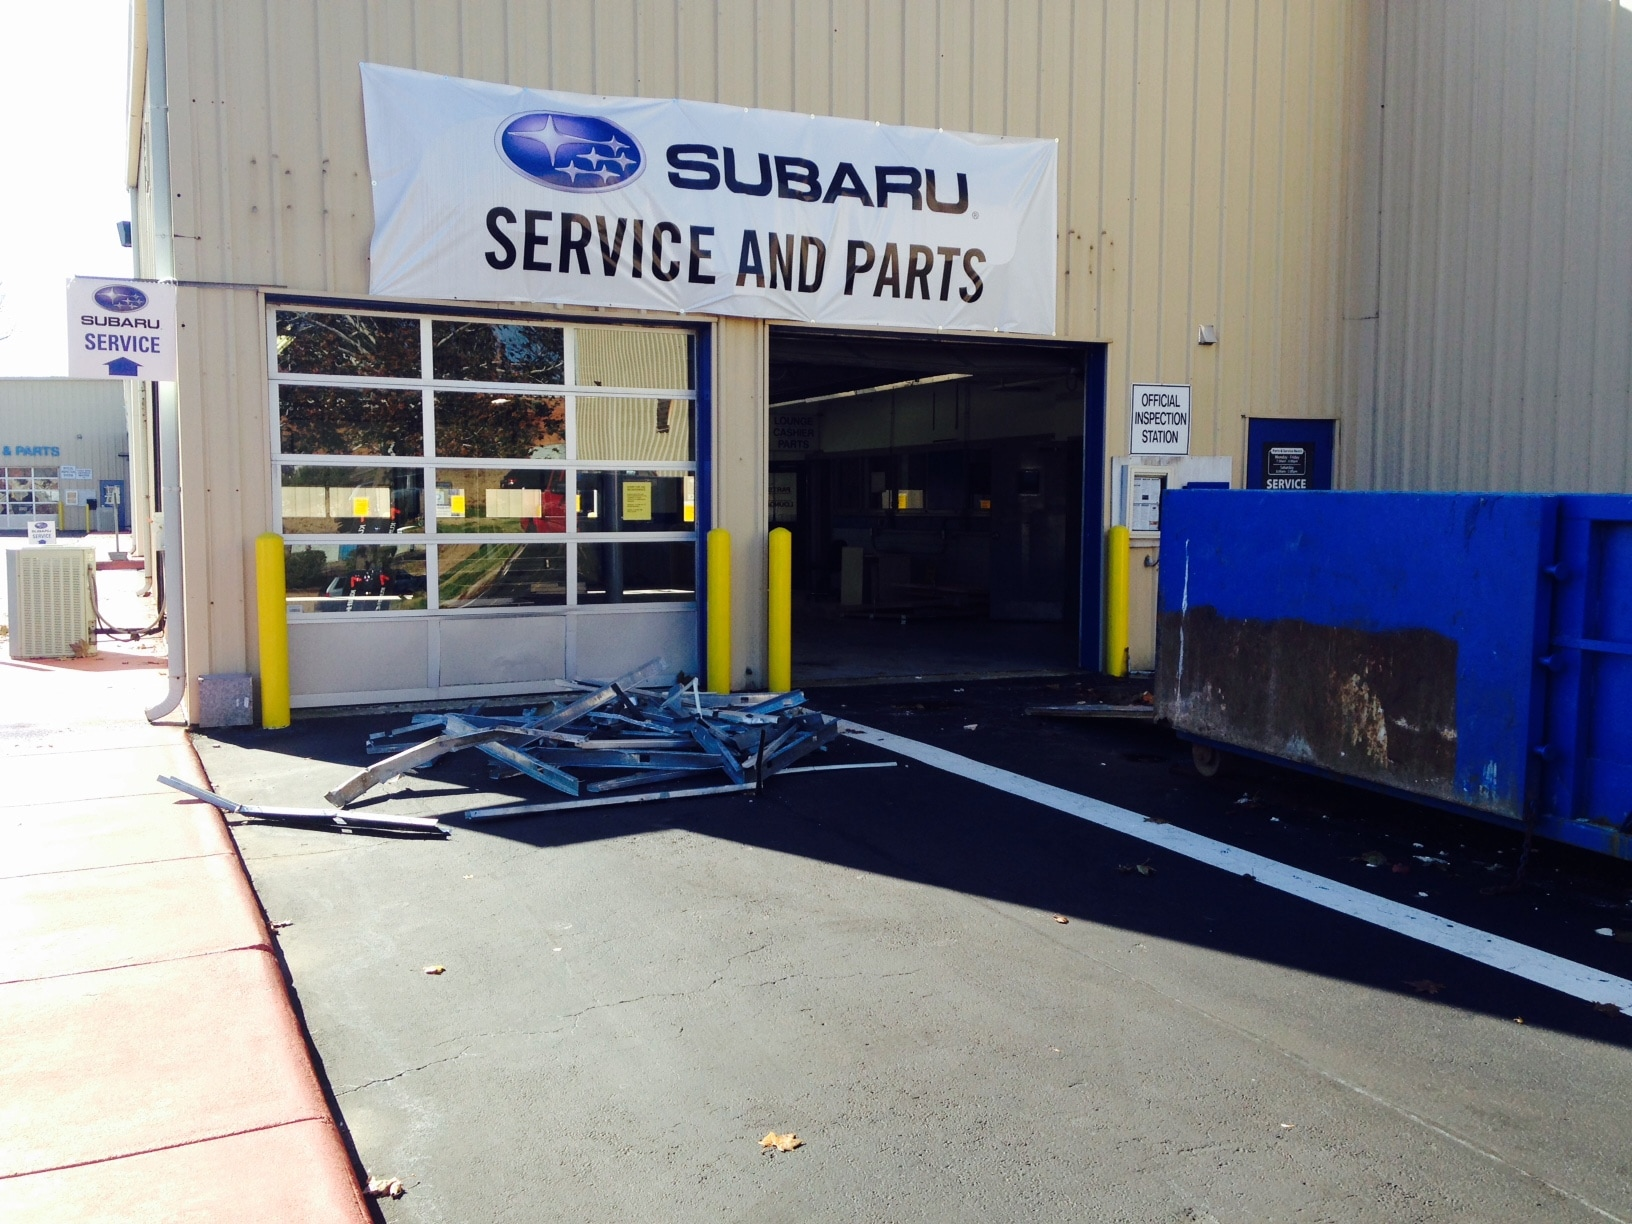 southern states subaru new subaru dealership in raleigh. Black Bedroom Furniture Sets. Home Design Ideas